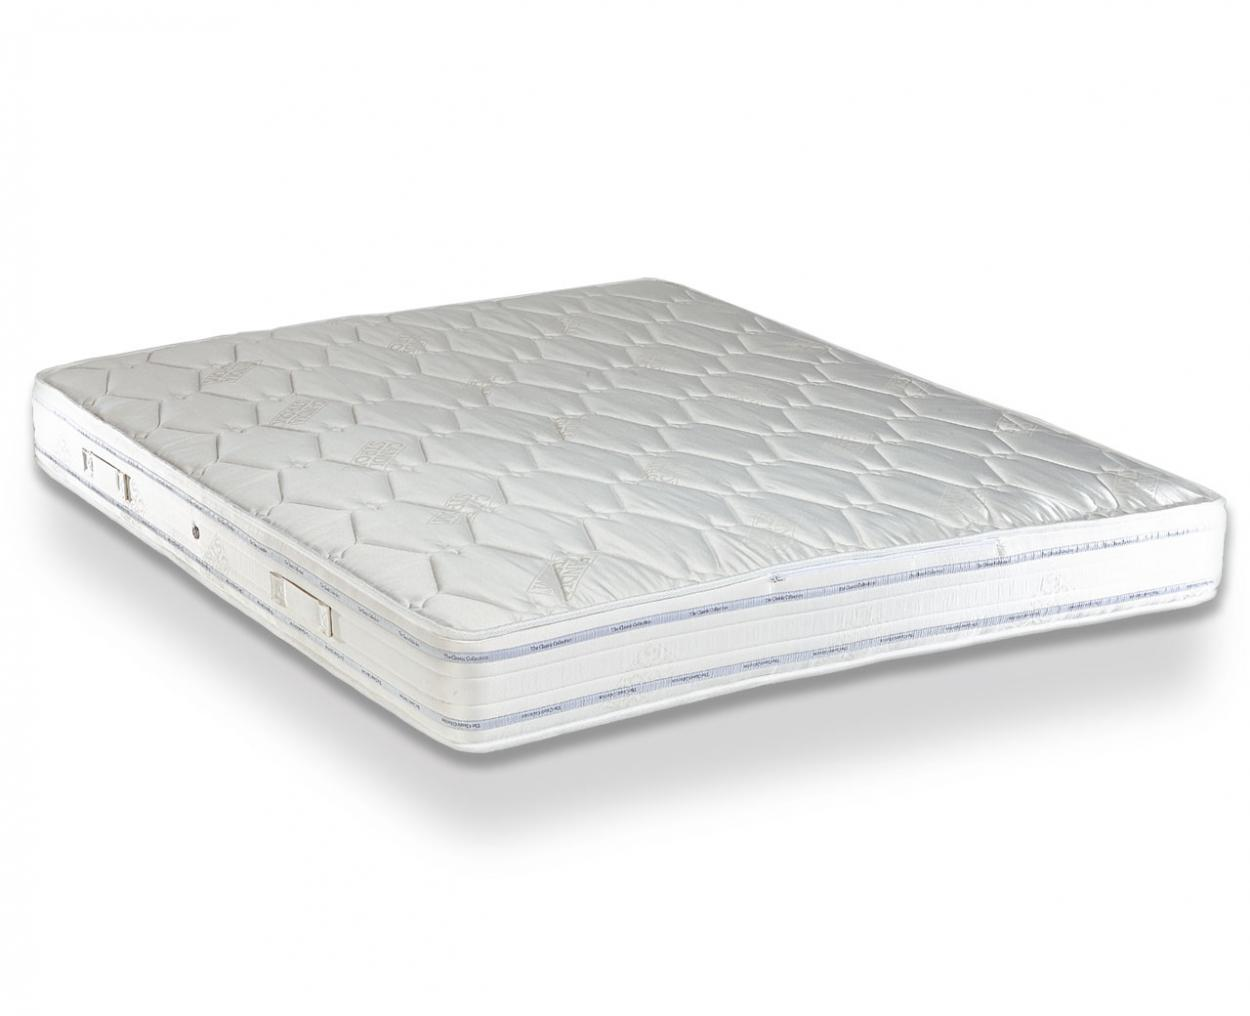 CandiaStrom - Mattress ASTRA - CLASSIC COLLECTION - General Image